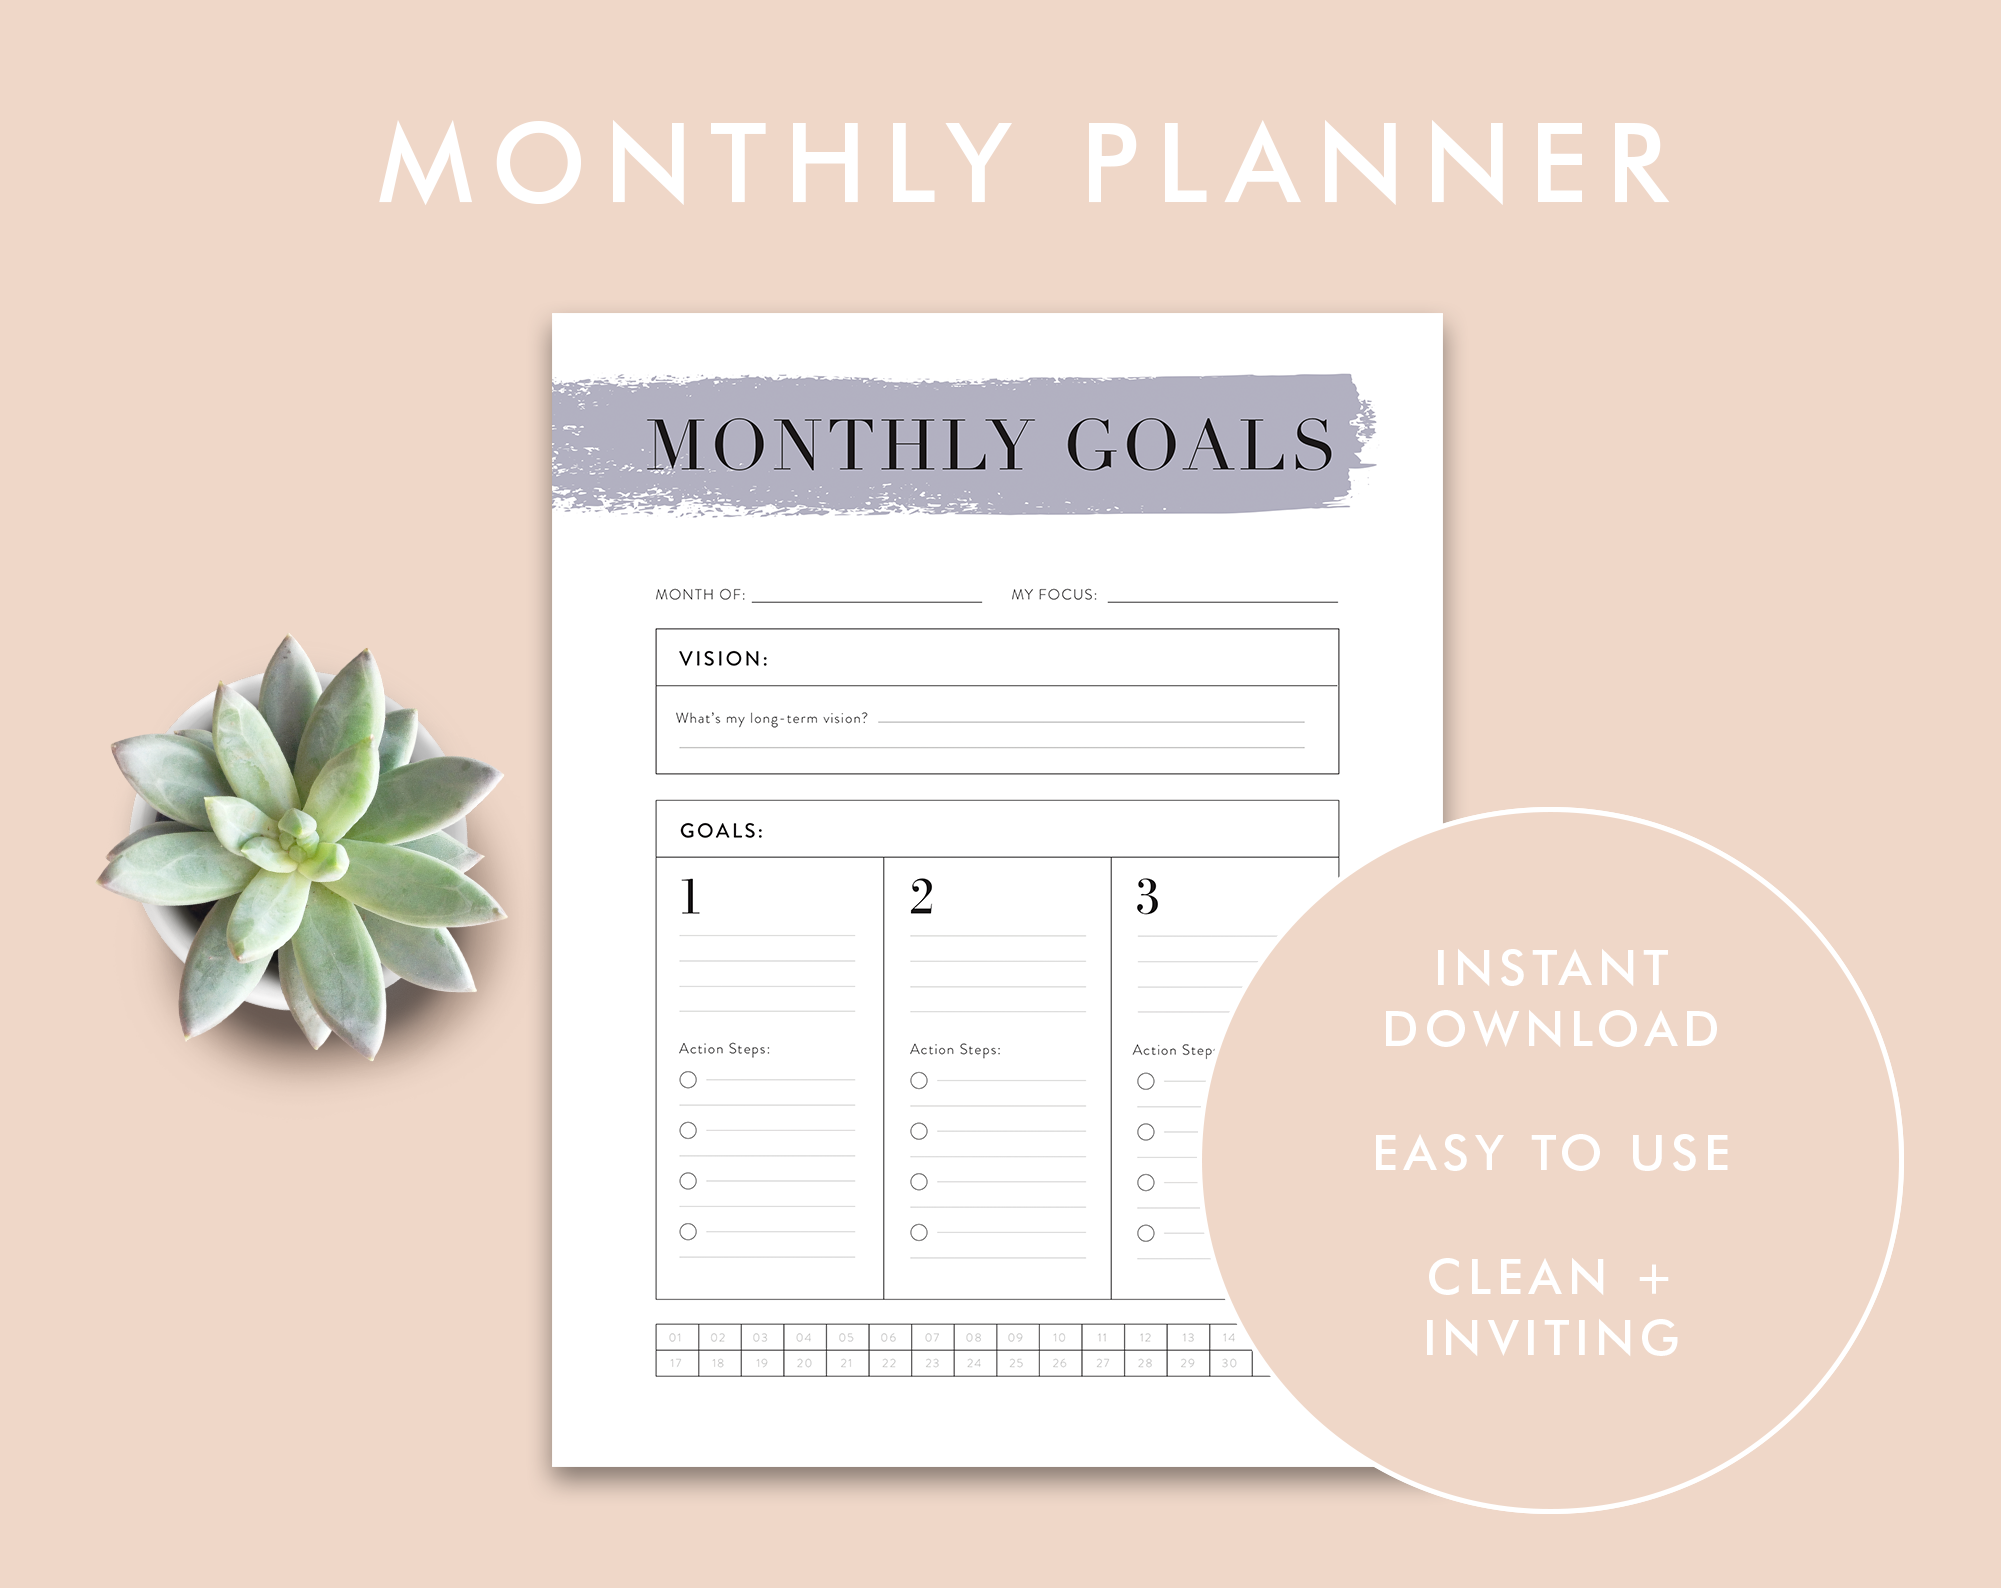 Monthly Planner Cover.png